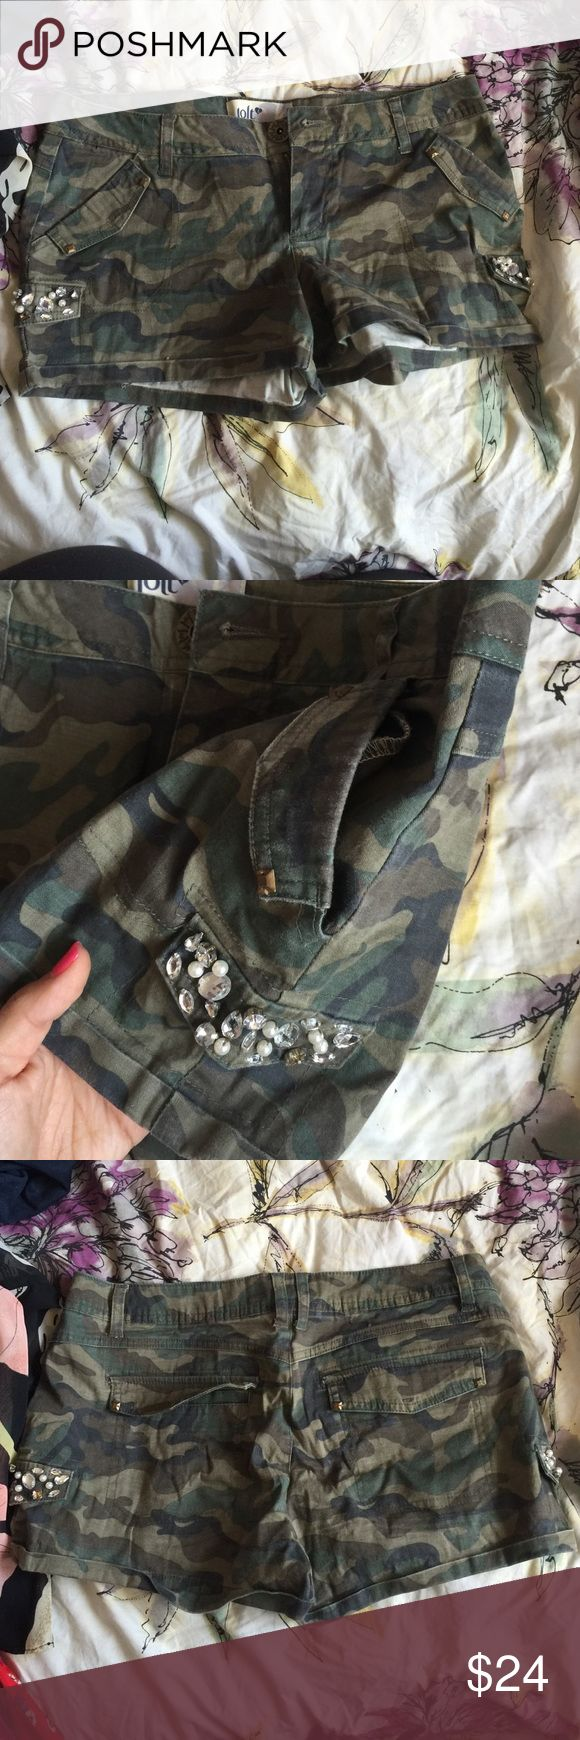 Army shorts with diamond and pearl detail pockets Army shorts with diamond and pearl detail pockets Jolt Shorts